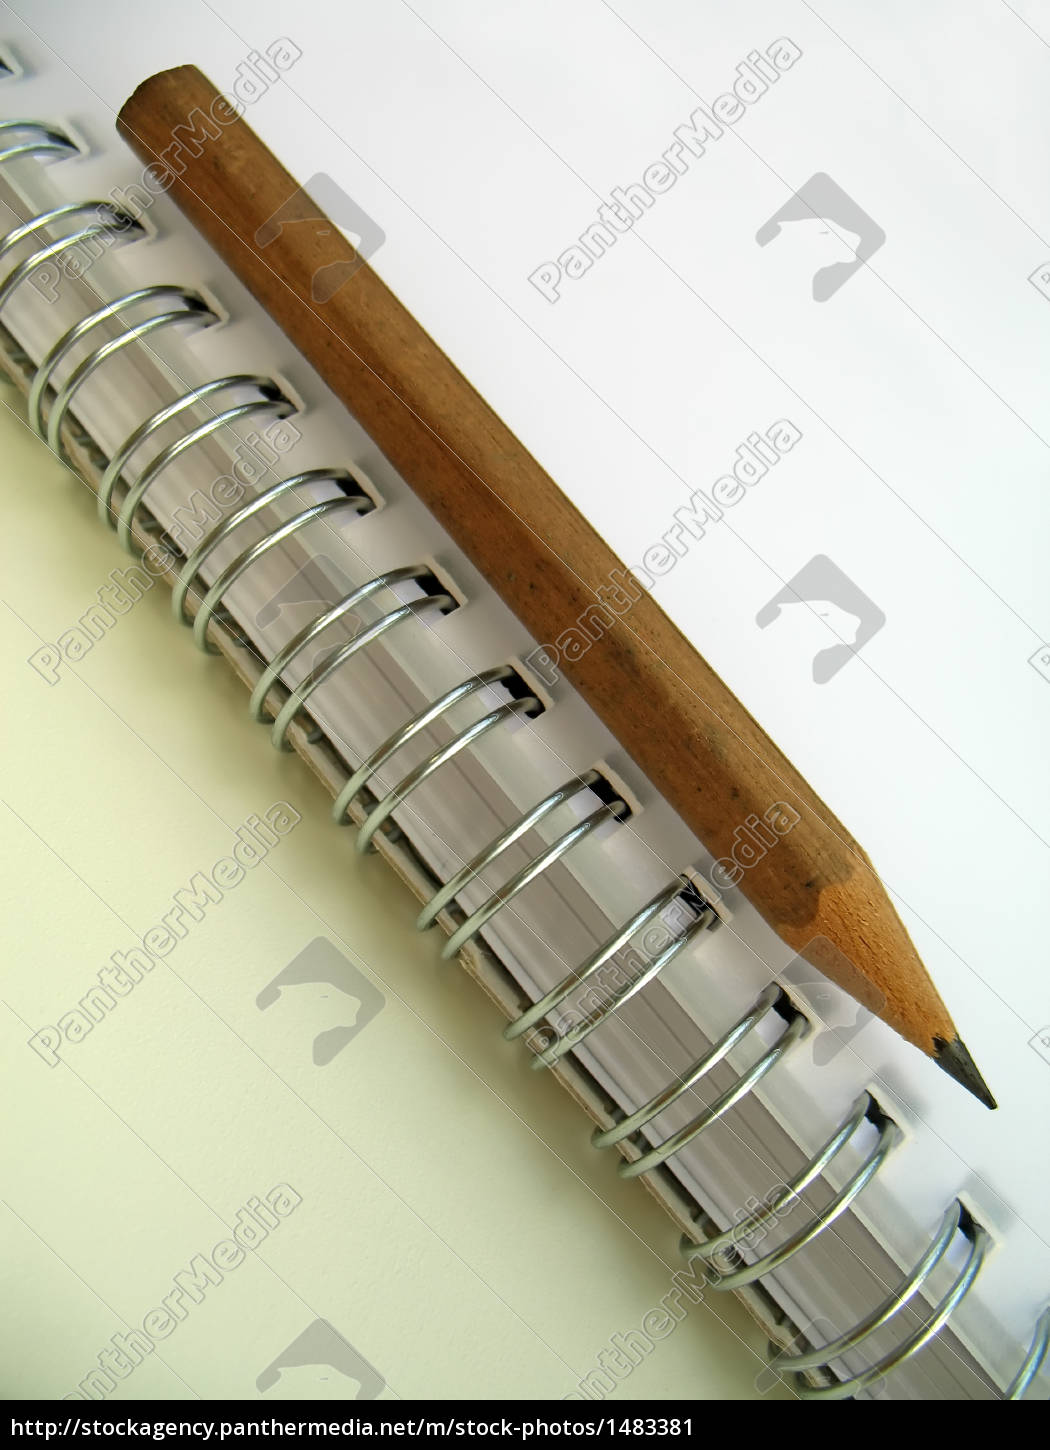 ring, binder, and, pencil - 1483381